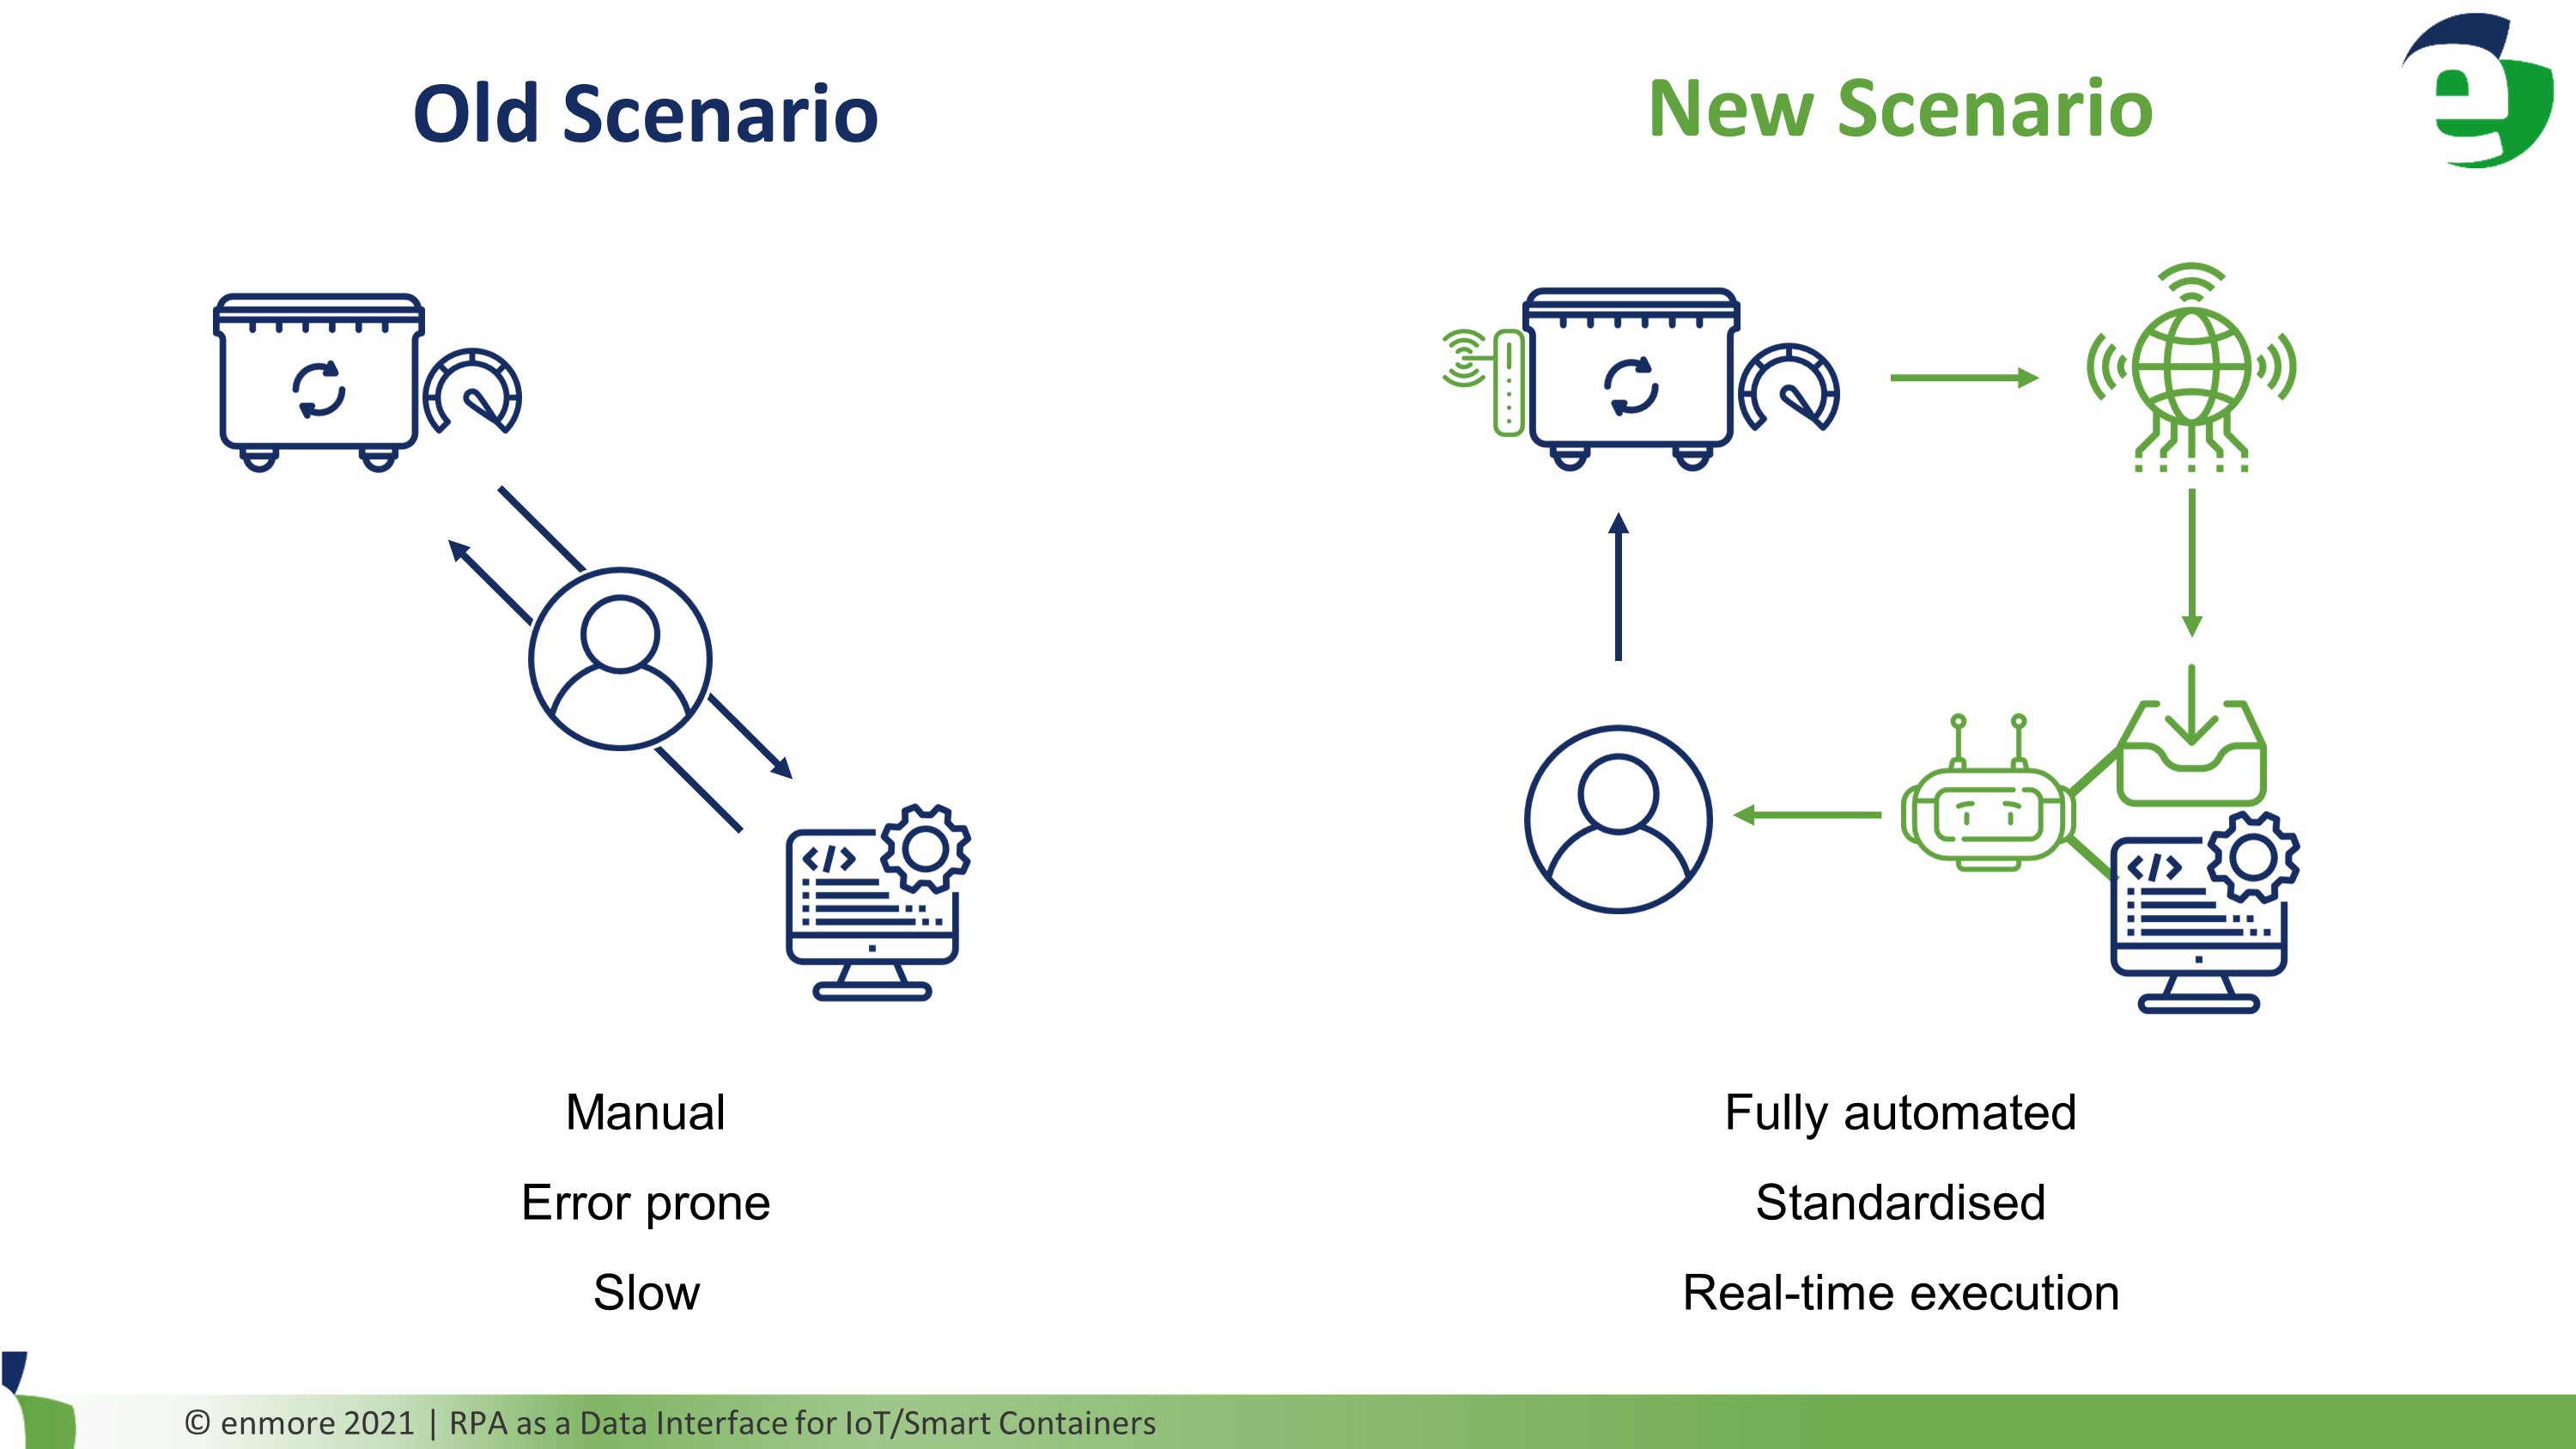 Comparing%20the%20scenario%20before%20and%20after%20bot%20implementation